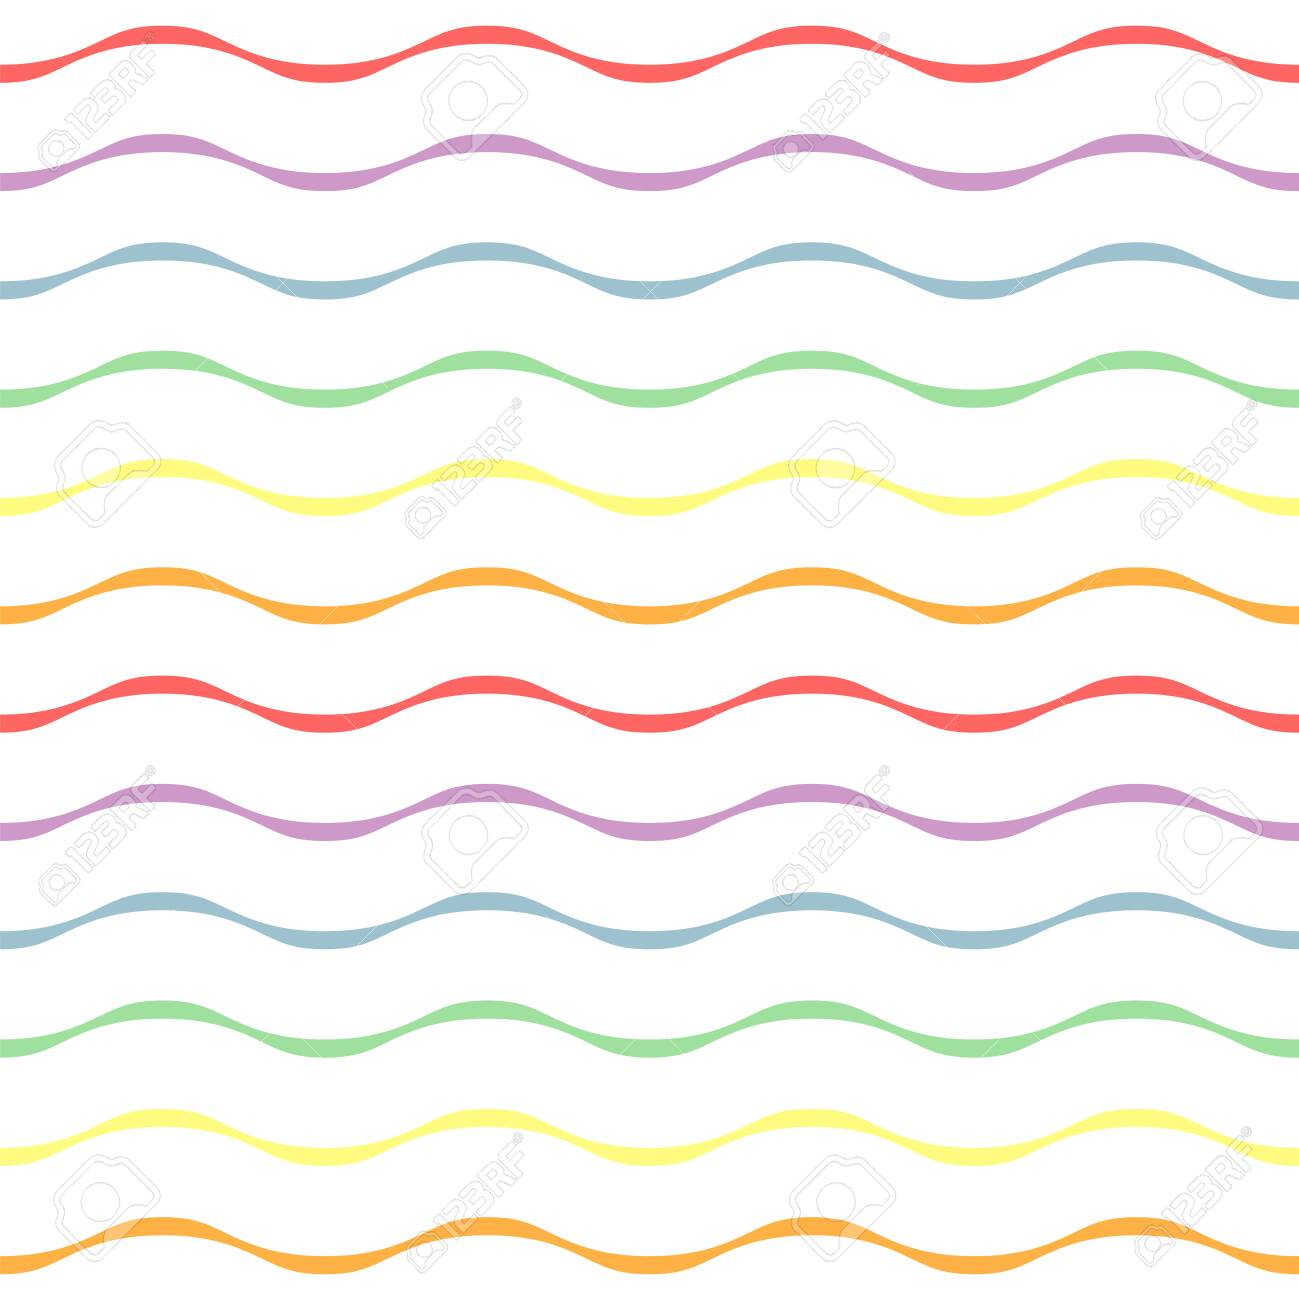 Rainbow wavy stripe repeat pattern on white background. Great for wallpaper, web background, wrapping paper, fabric, packaging, greeting cards, invitations and more. - 152080969